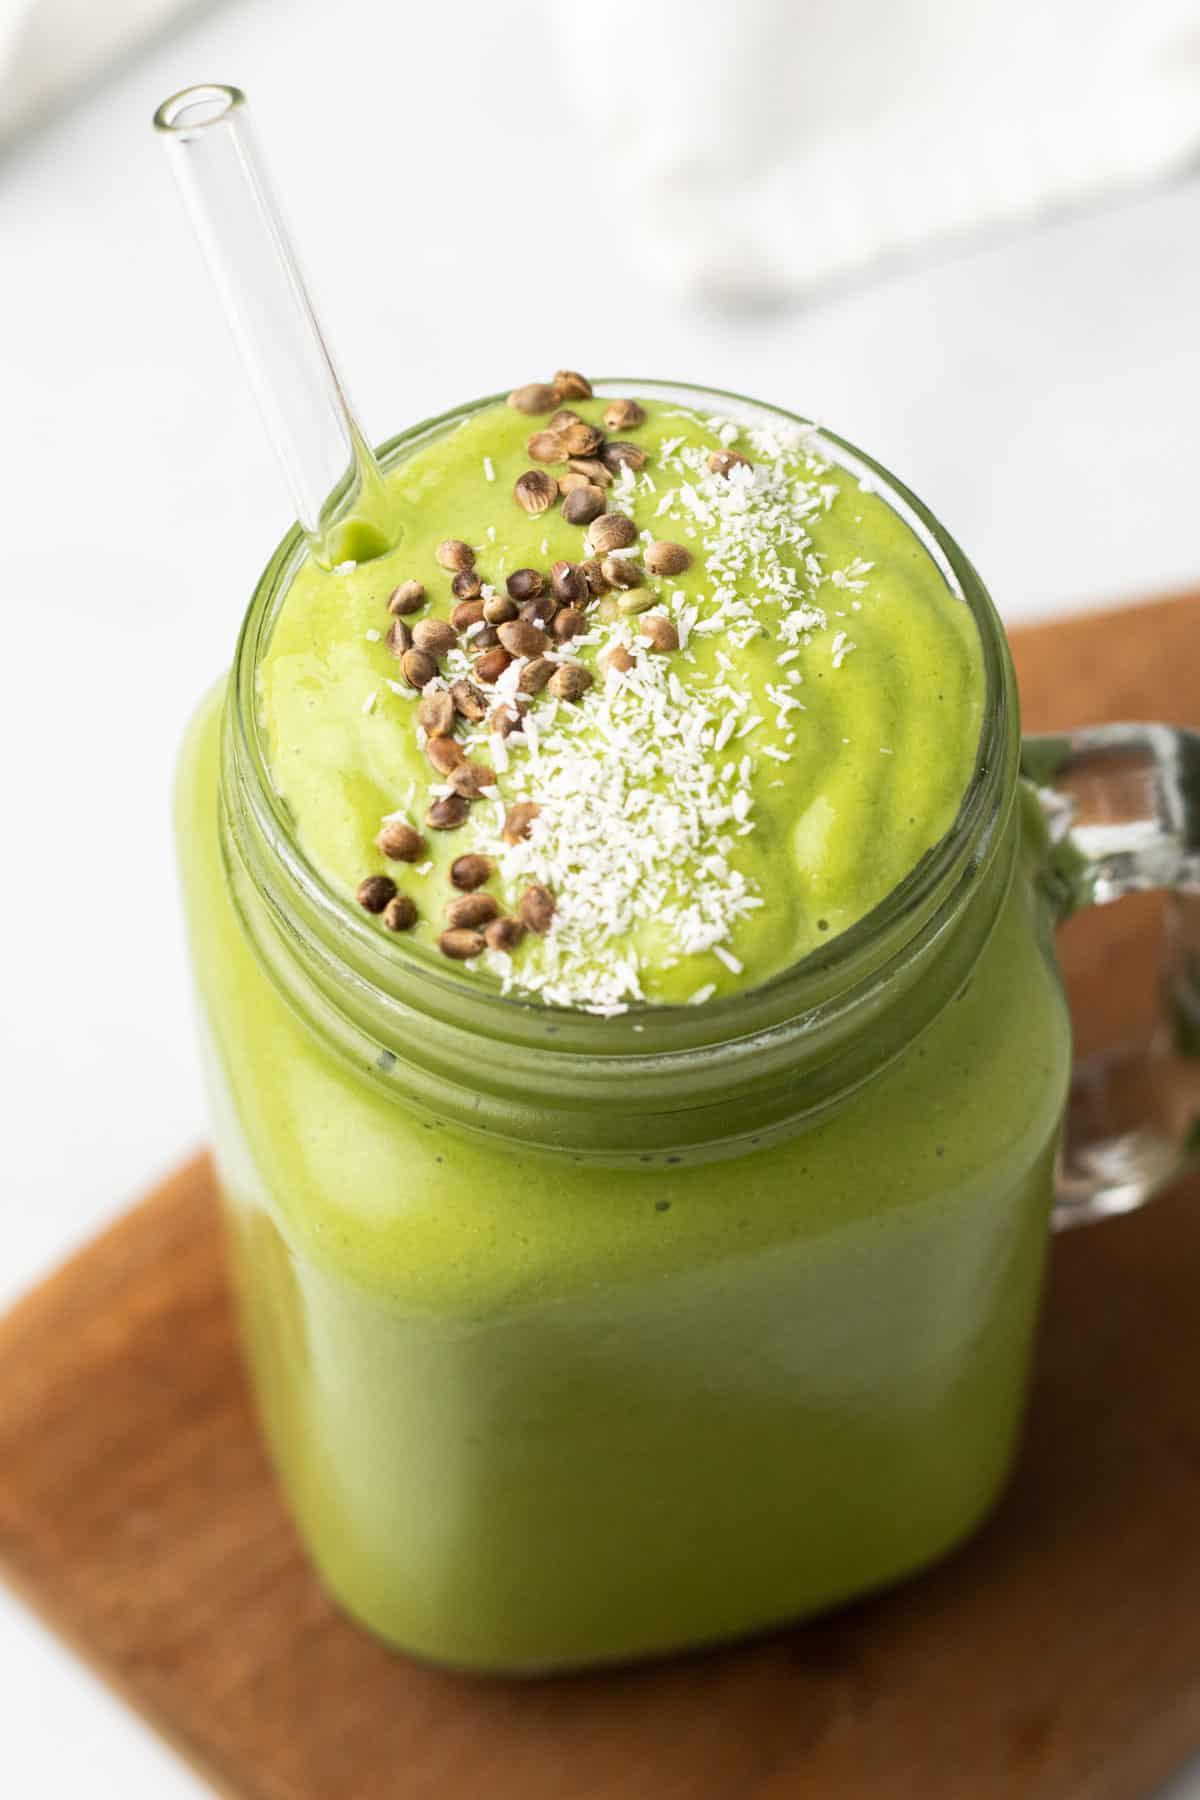 Low-Carb Green Smoothie in a glass jar with a glass straw and topped with shredded coconut and flax seeds